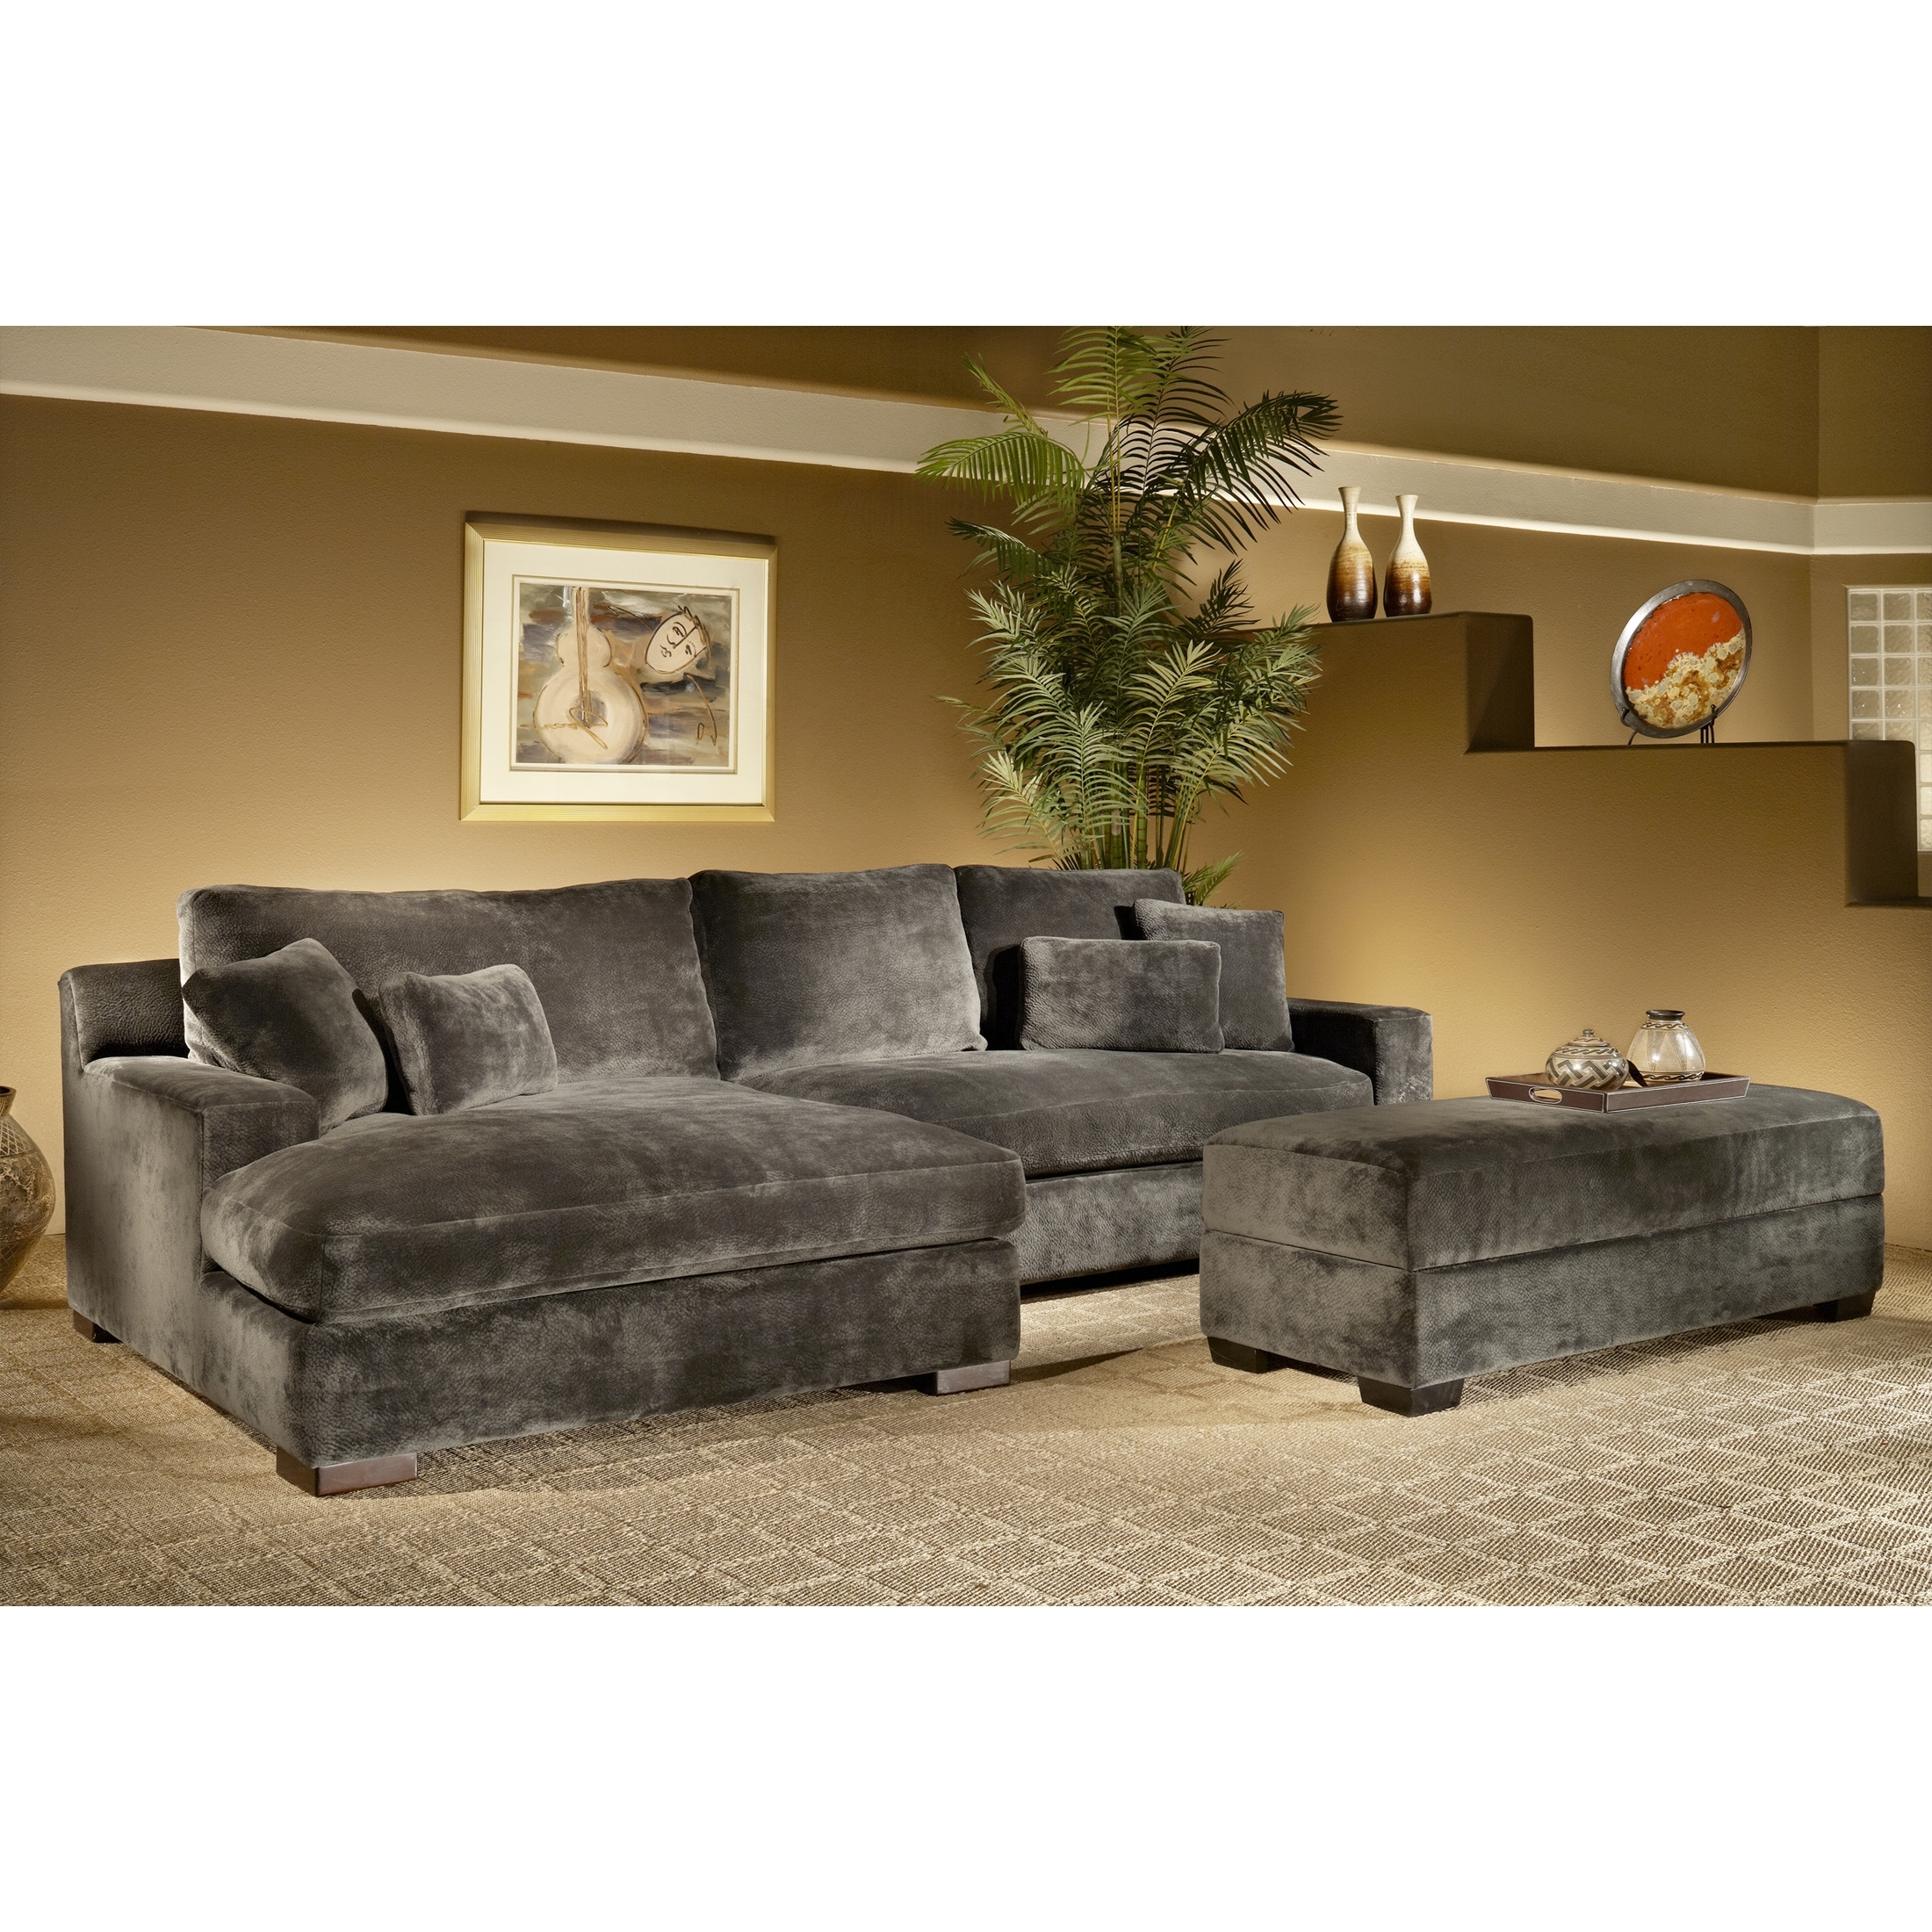 Kingston Ontario Sectional Sofas With Regard To Newest The Casual Contemporary Doris Two Piece Chaise Sectional Is (View 4 of 15)